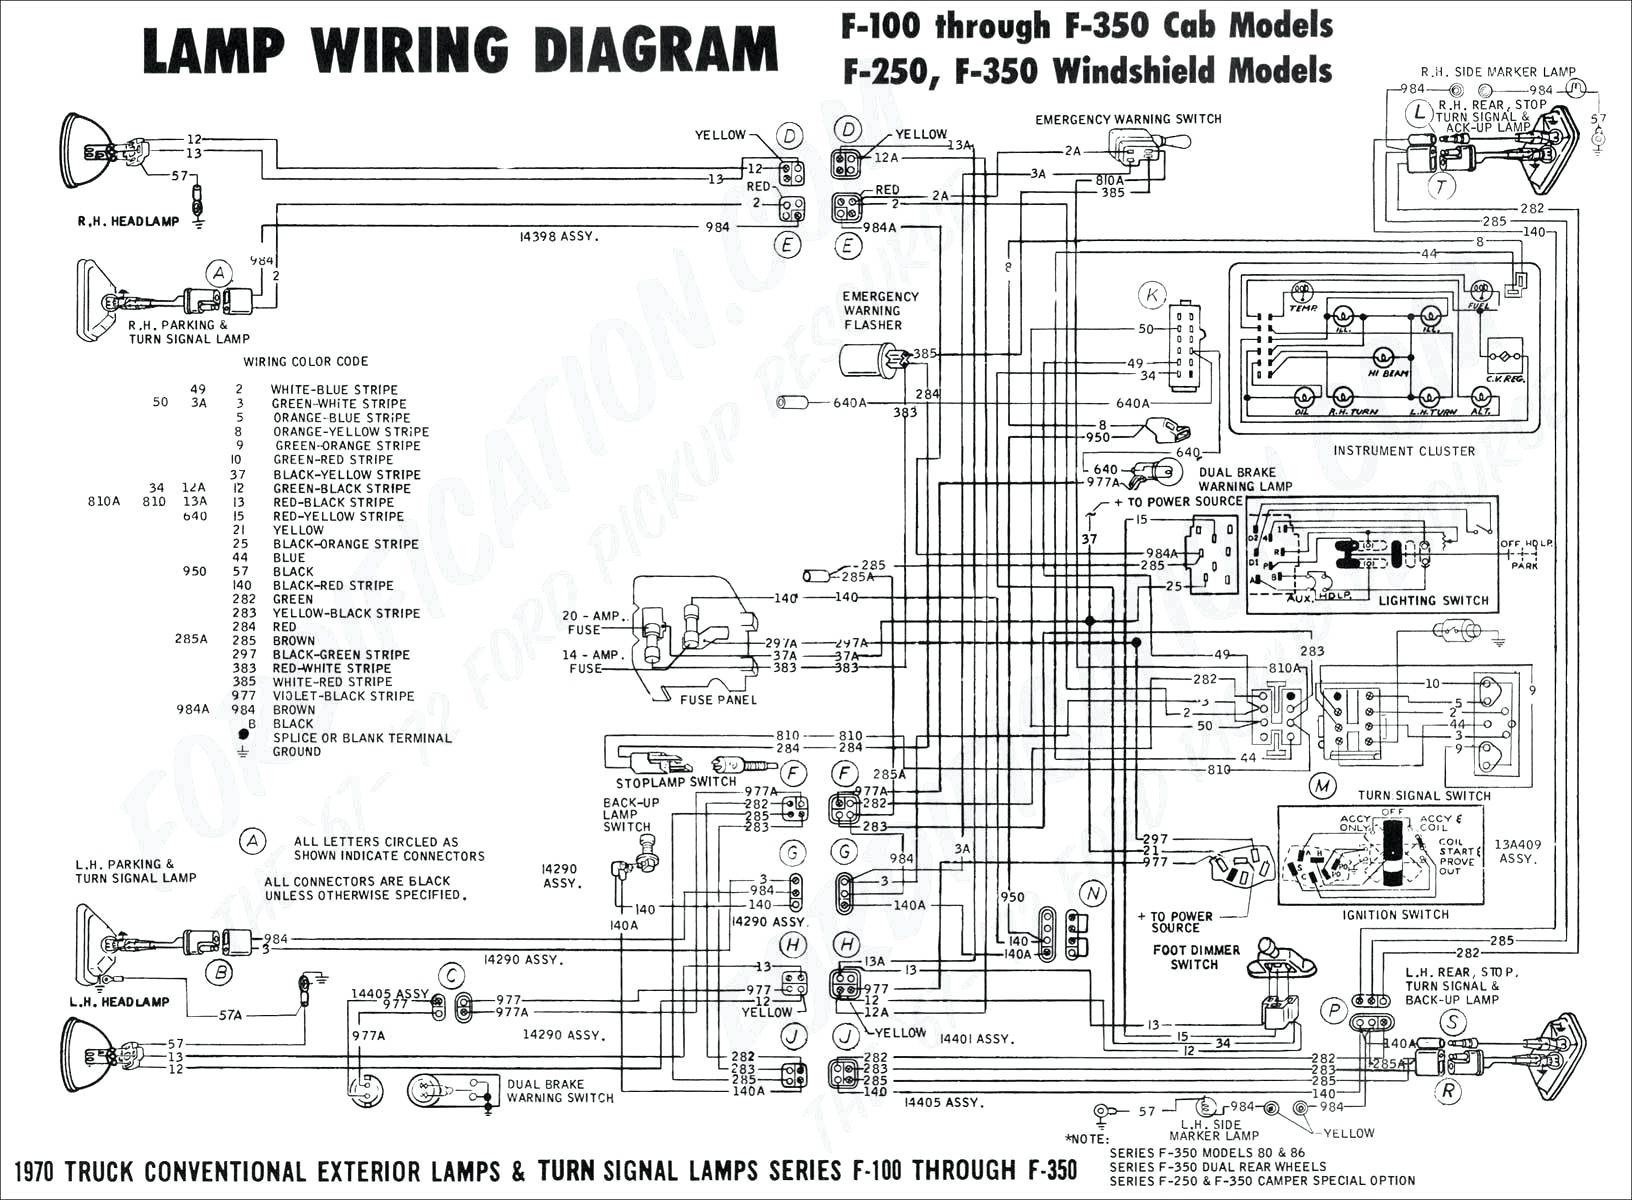 2003 Land Rover Discovery Engine Diagram 2003 F350 Wiring Diagram Starting Know About Wiring Diagram • Of 2003 Land Rover Discovery Engine Diagram